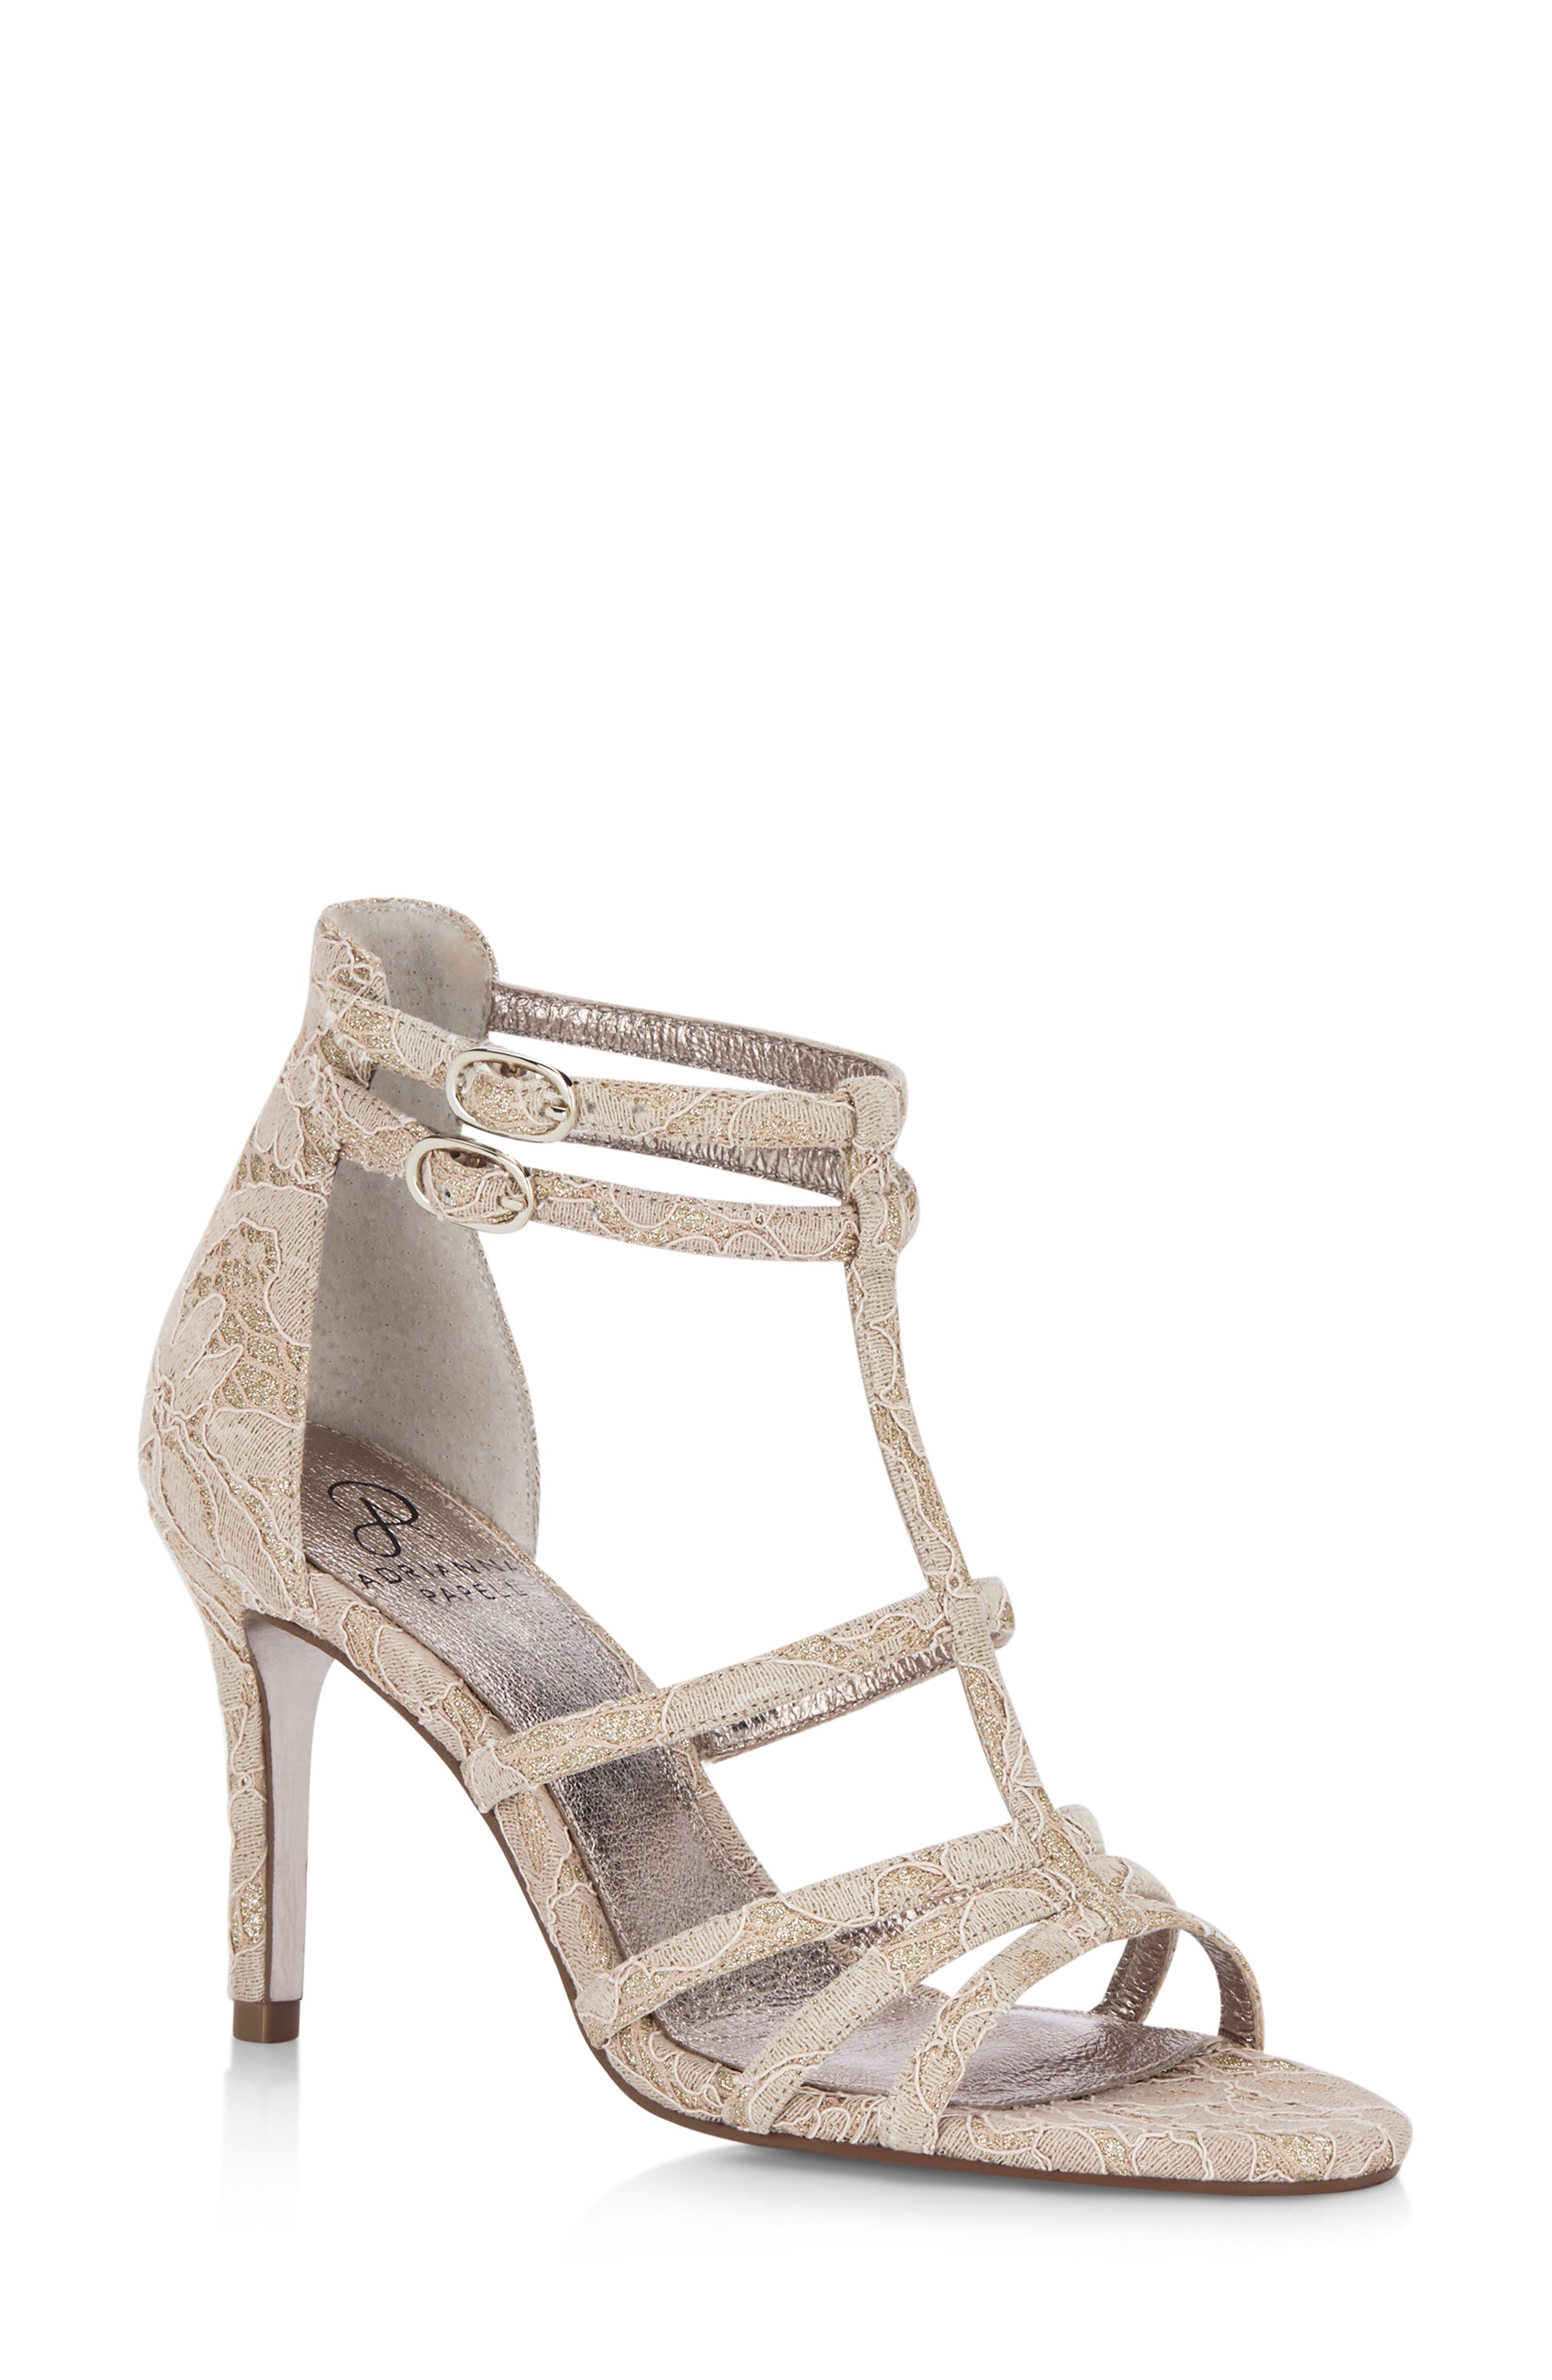 Adrianna Papell Adara Ankle Strap Sandal- Pink